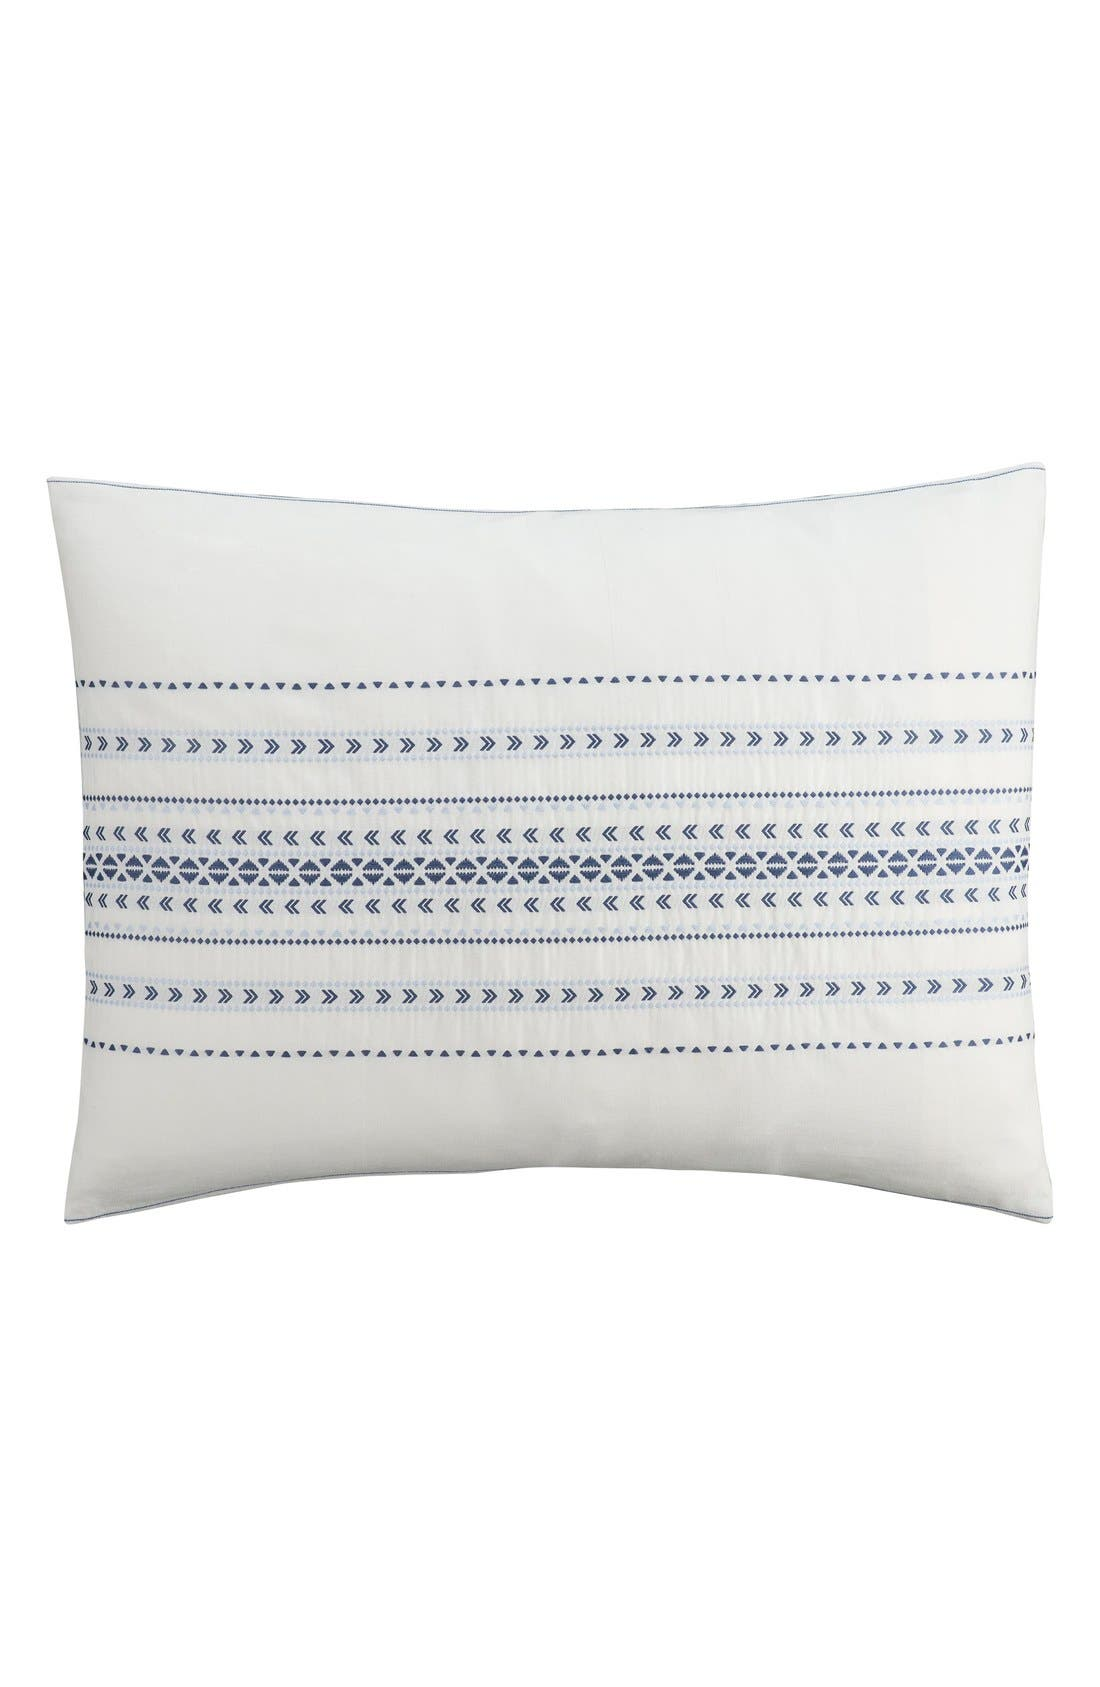 'Indigo Stripe' Sham,                             Main thumbnail 1, color,                             100